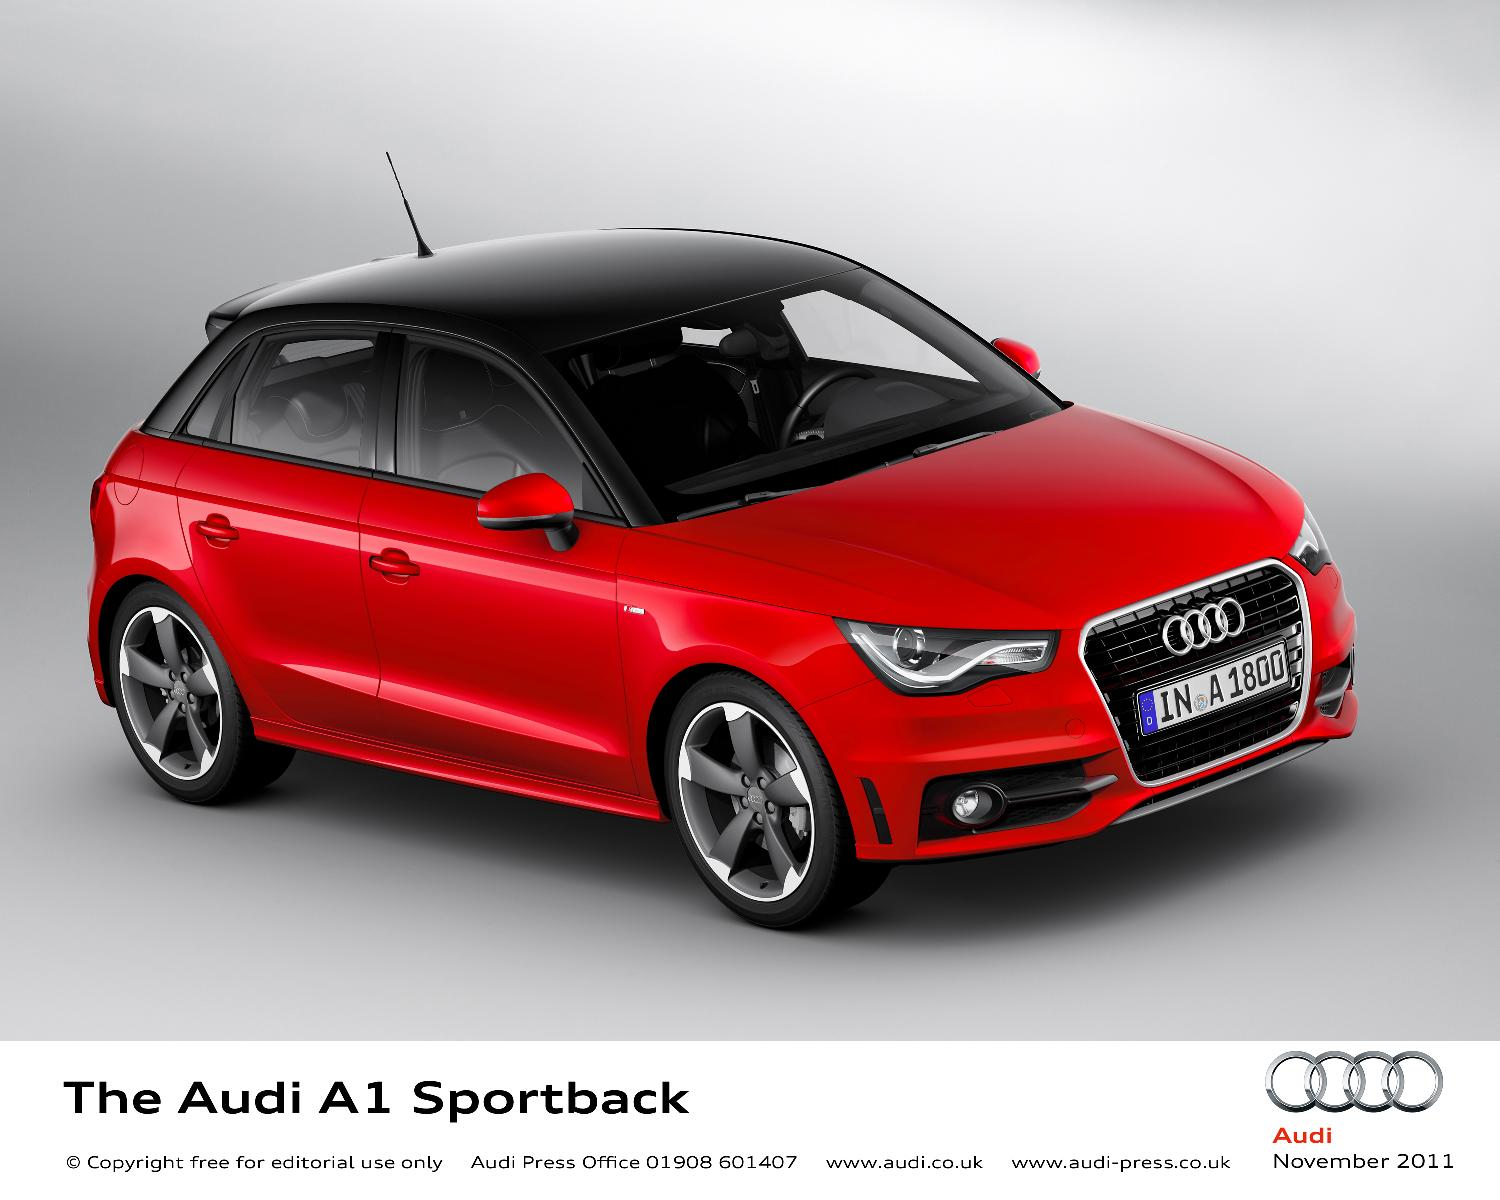 audi a1 sportback cars life cars fashion lifestyle blog. Black Bedroom Furniture Sets. Home Design Ideas